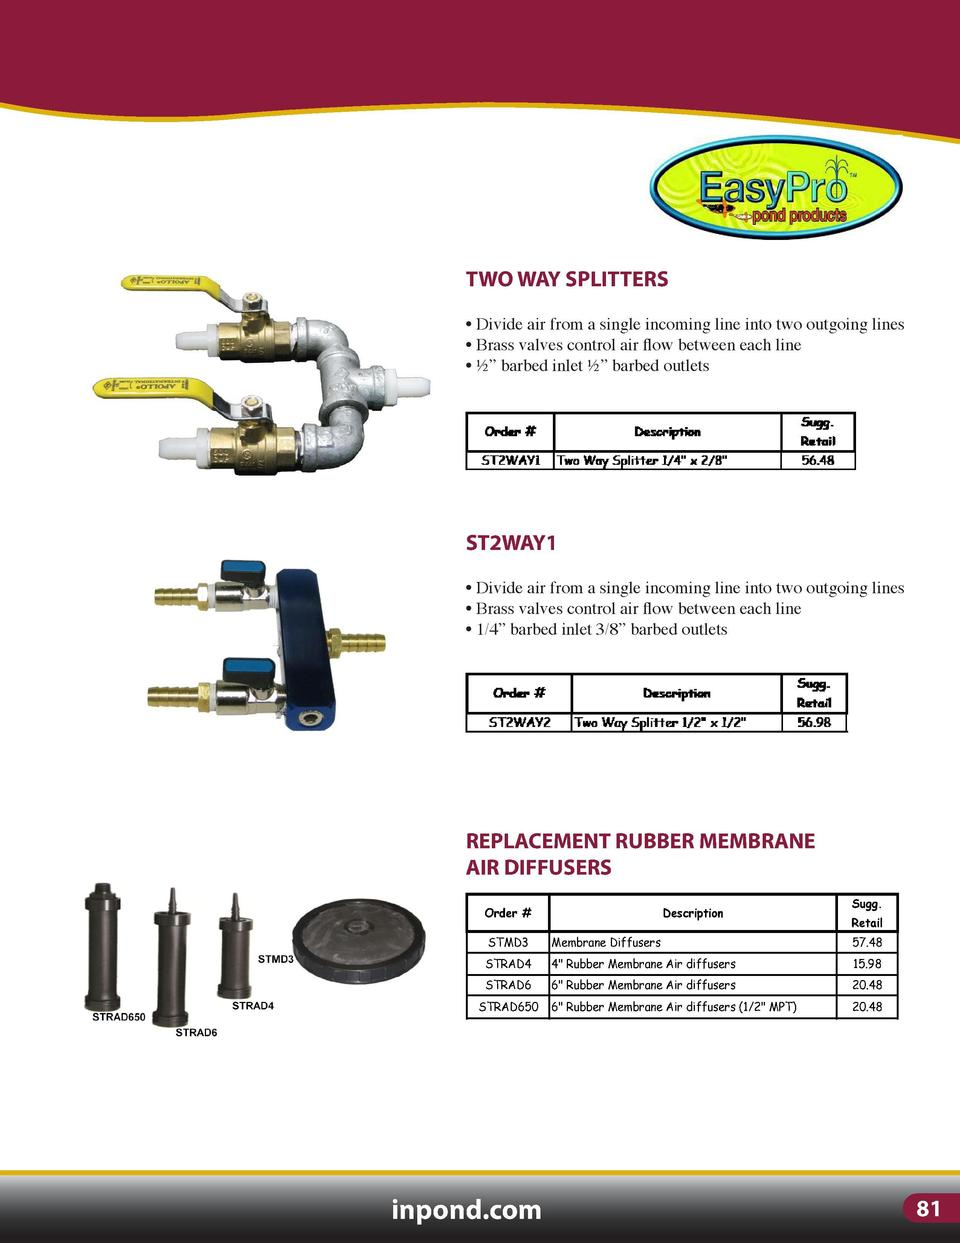 SUBSURFACE AERATION  TWO WAY SPLITTERS  MEMBRANE DIFFUSER ASSEMBLIES Order    Sugg.  Description      Divide air from a si...